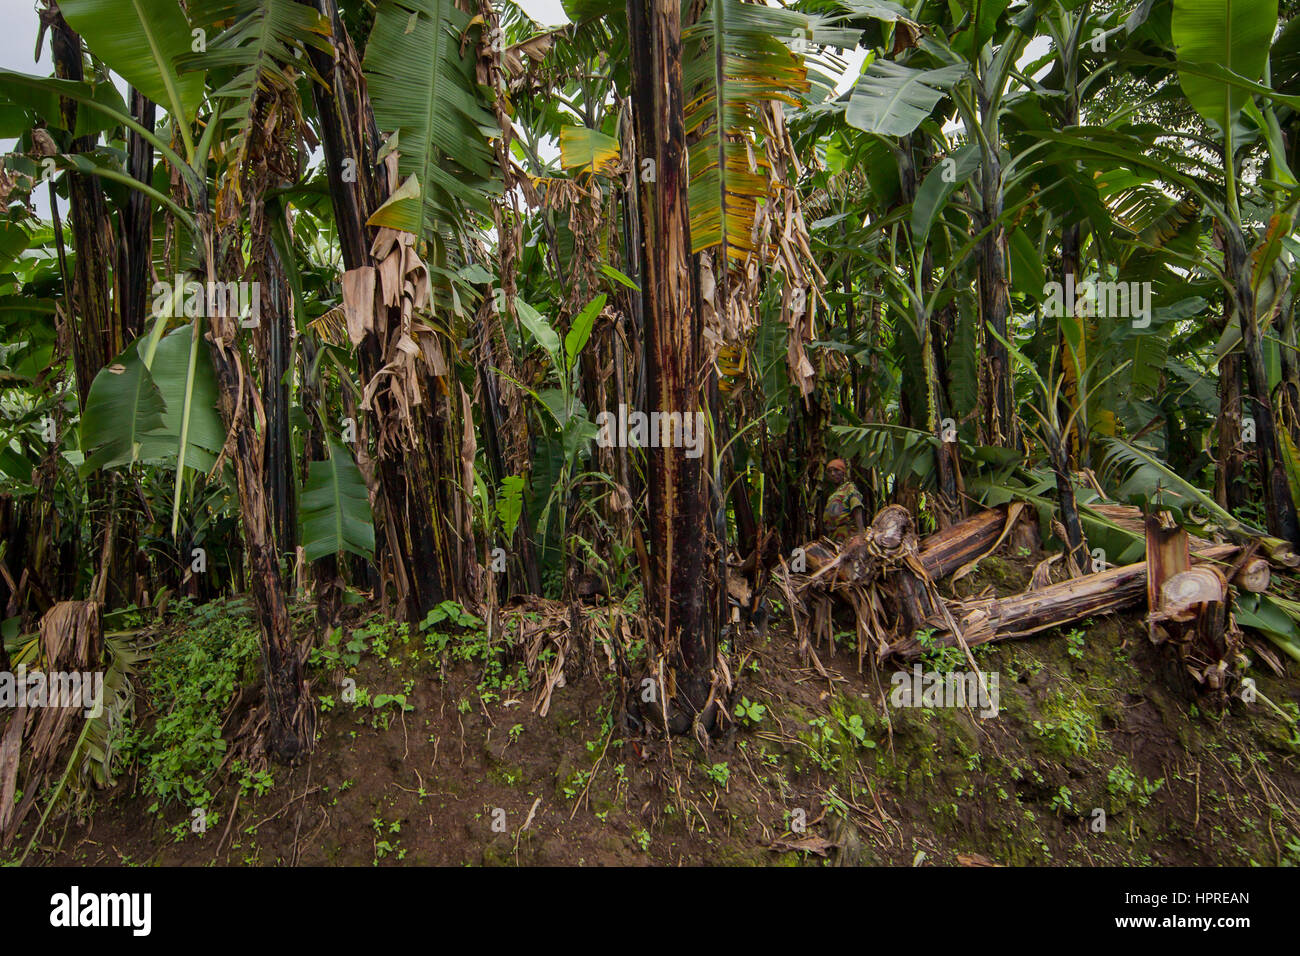 A woman blends in well to the dark shadows of a banana plantation in eastern Democratic Republic of Congo. - Stock Image